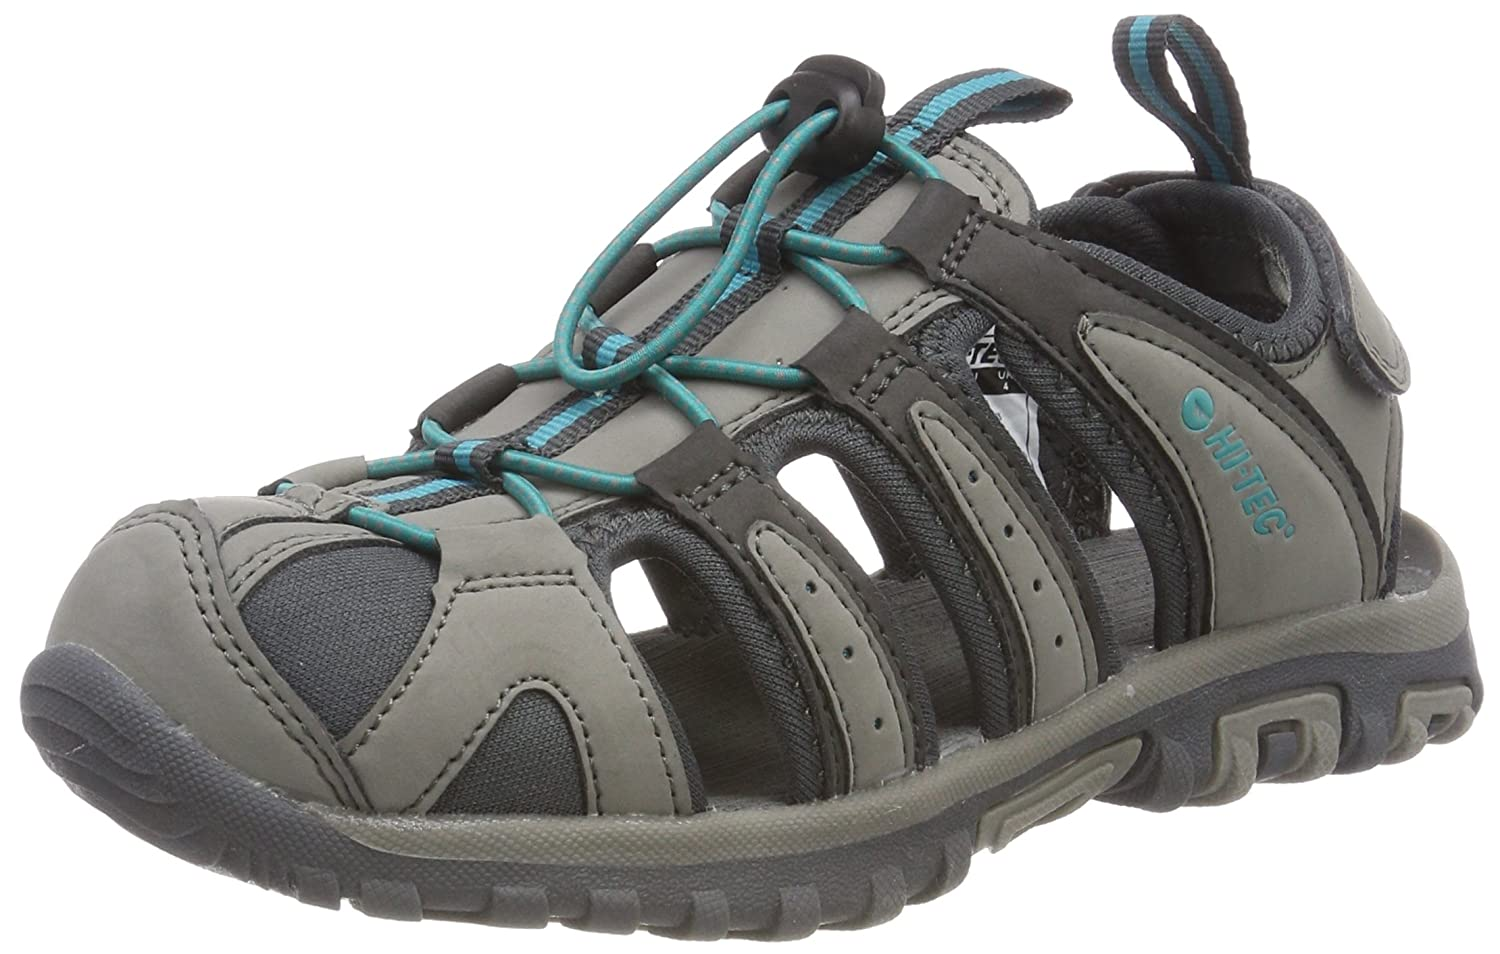 afc99c6ccd9d Hi-Tec Women rsquo  s Cove Hiking Sandals 5 UK